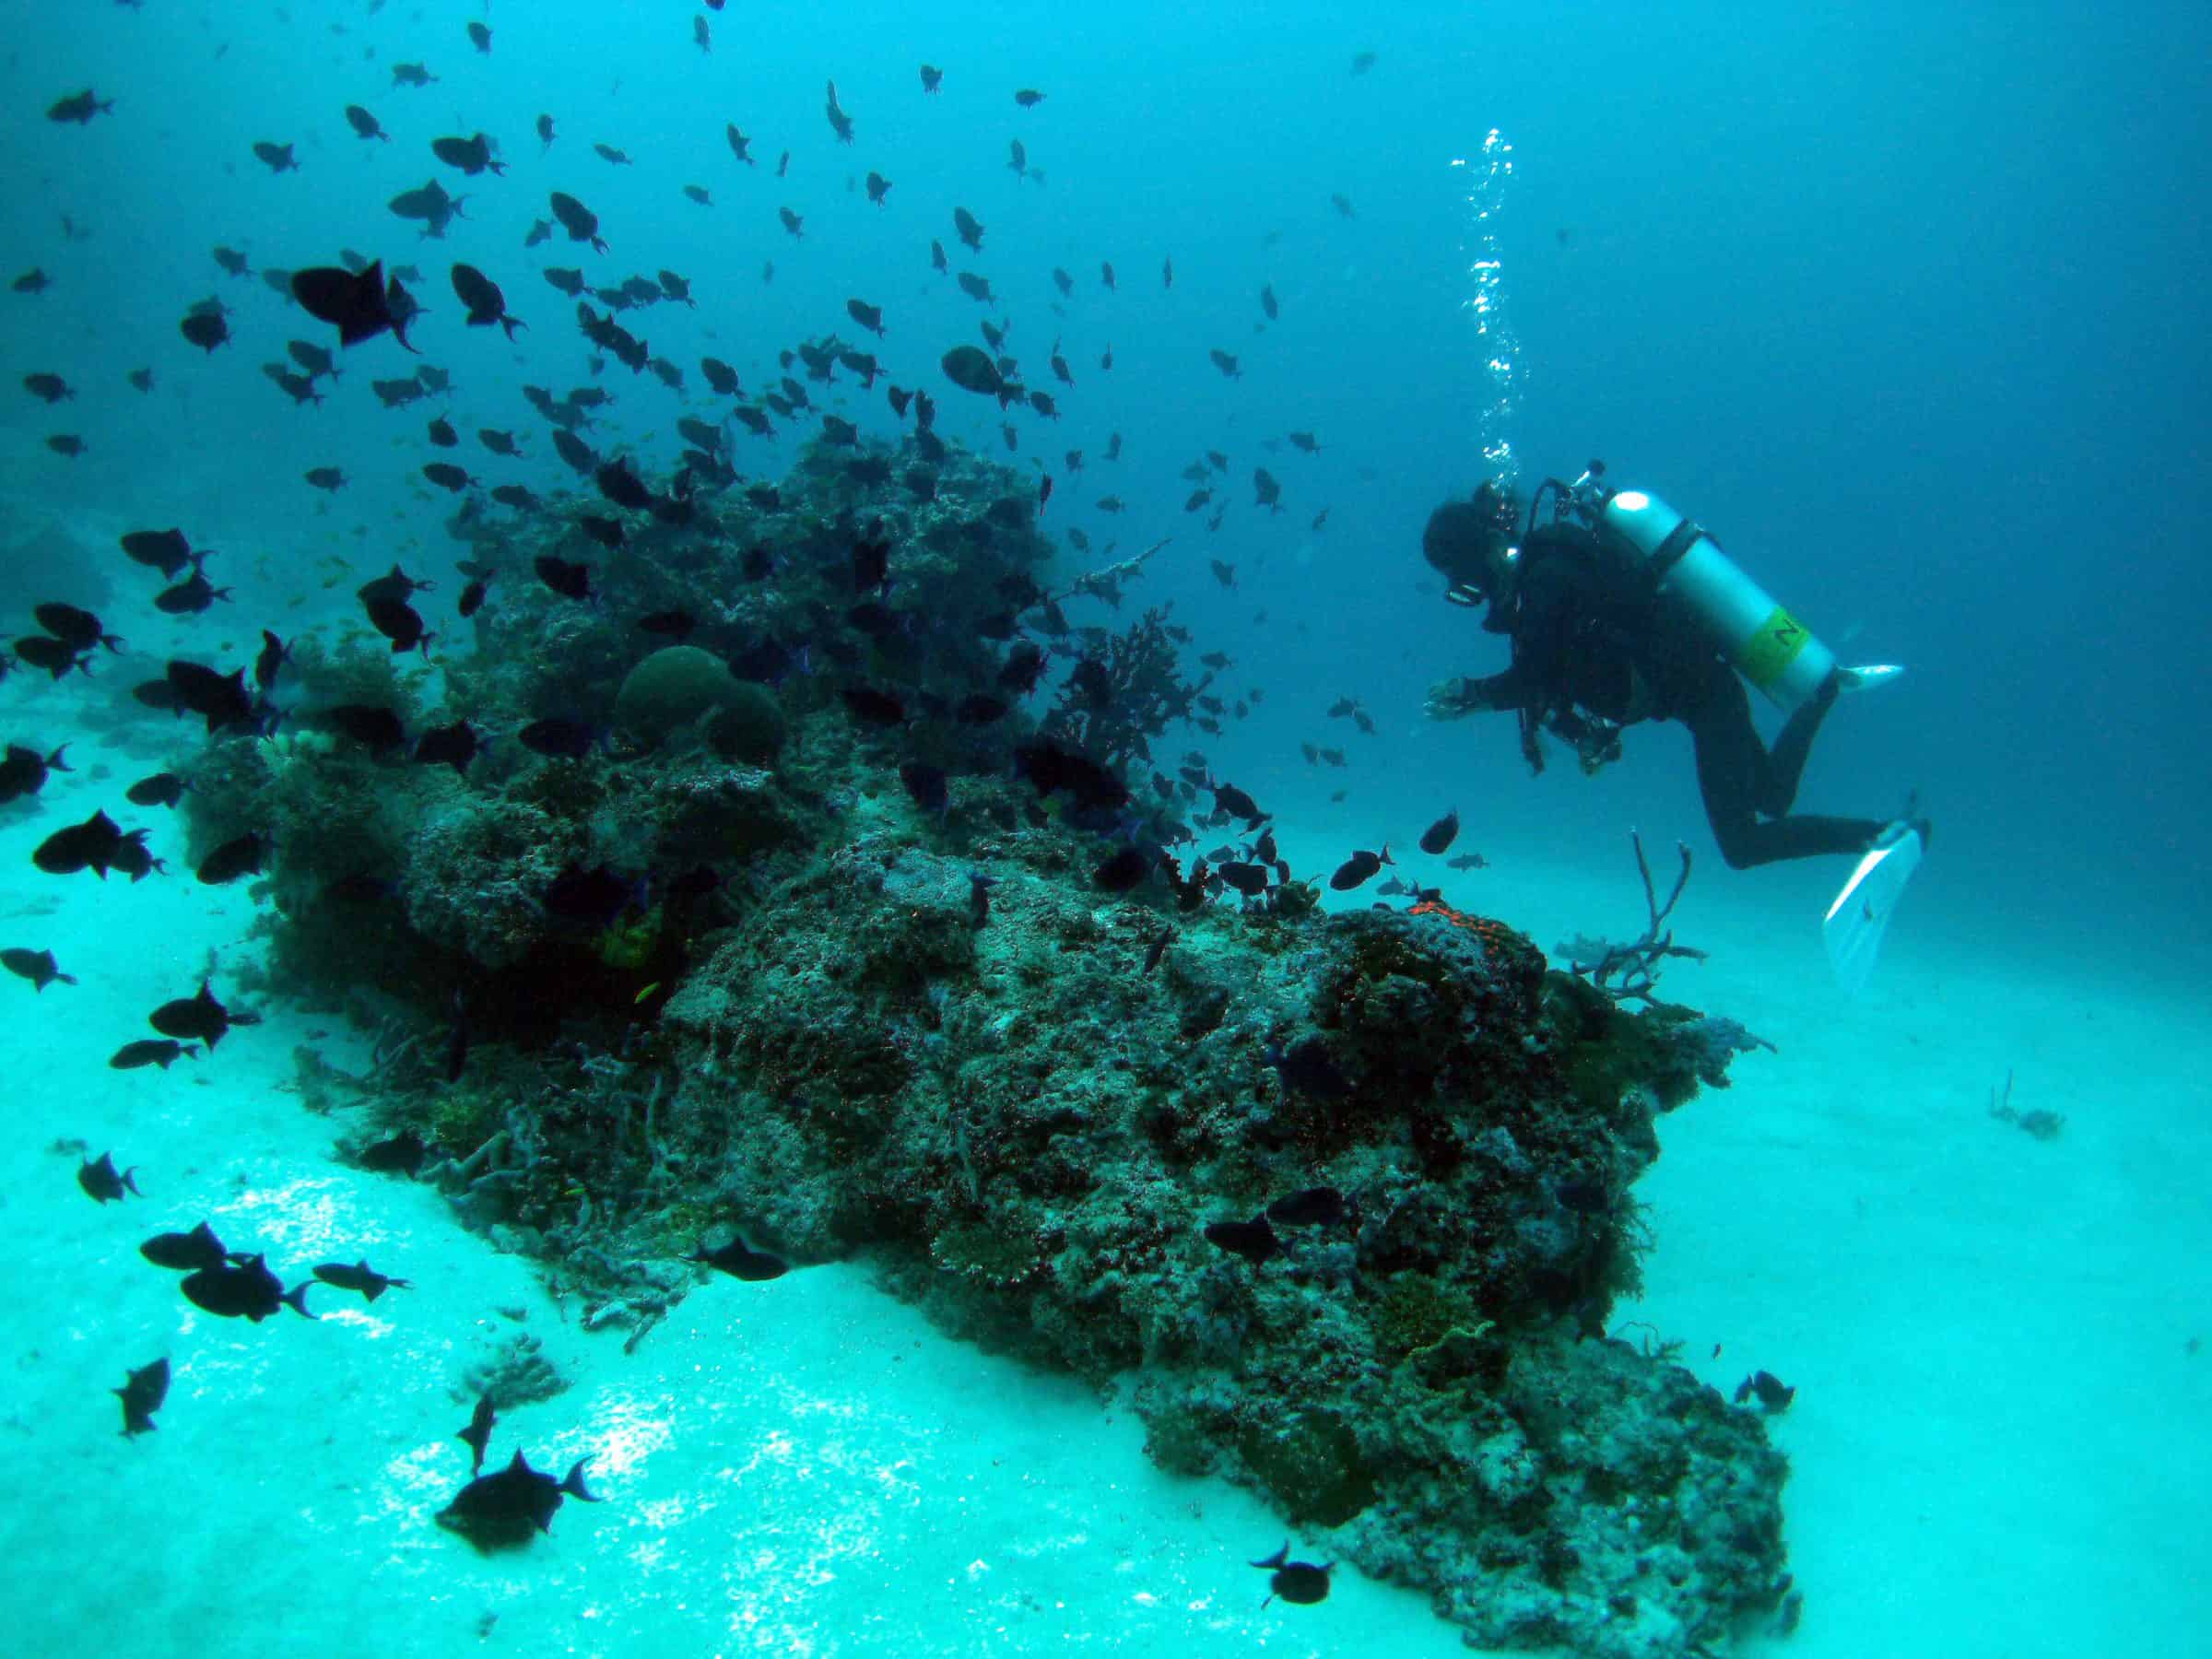 Diving amid fish and coral reefs